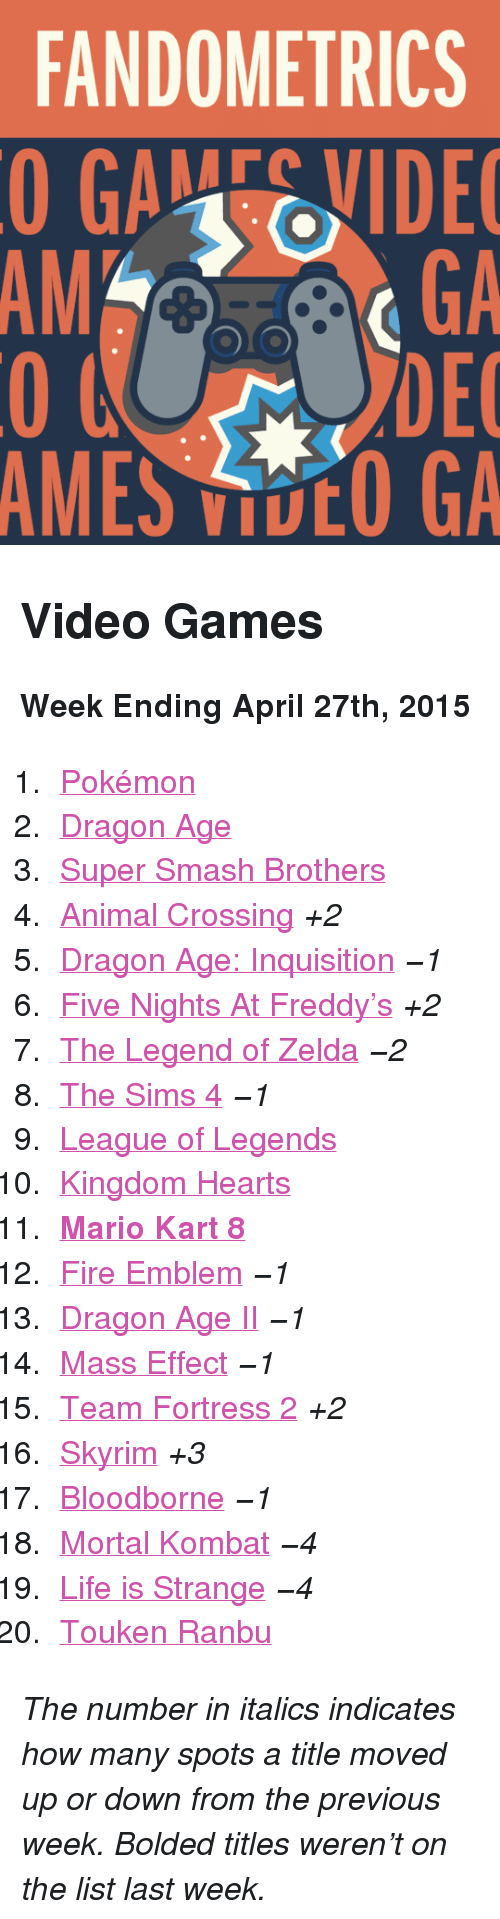 """mario kart 8: FANDOMETRICS  GAEVIDE  GA  DEC  AMES VOO GA  AM <h2>Video Games</h2><p><b>Week Ending April 27th, 2015</b></p><ol><li><a href=""""http://www.tumblr.com/search/pokemon"""">Pokémon</a></li>  <li><a href=""""http://www.tumblr.com/search/dragon%20age"""">Dragon Age</a></li>  <li><a href=""""http://www.tumblr.com/search/super%20smash%20bros"""">Super Smash Brothers</a></li>  <li><a href=""""http://www.tumblr.com/search/acnl"""">Animal Crossing</a><i>+2</i></li>  <li><a href=""""http://www.tumblr.com/search/dragon%20age%20inquisition"""">Dragon Age: Inquisition</a><i>−1</i></li>  <li><a href=""""http://www.tumblr.com/search/five%20nights%20at%20freddy's"""">Five Nights At Freddy&rsquo;s</a><i>+2</i></li>  <li><a href=""""http://www.tumblr.com/search/legend%20of%20zelda"""">The Legend of Zelda</a><i>−2</i></li>  <li><a href=""""http://www.tumblr.com/search/sims%204"""">The Sims 4</a><i>−1</i></li>  <li><a href=""""http://www.tumblr.com/search/league%20of%20legends"""">League of Legends</a></li>  <li><a href=""""http://www.tumblr.com/search/kingdom%20hearts"""">Kingdom Hearts</a></li>  <li><a href=""""http://www.tumblr.com/search/mario%20kart%208""""><b>Mario Kart 8</b></a></li>  <li><a href=""""http://www.tumblr.com/search/fire%20emblem"""">Fire Emblem</a><i>−1</i></li>  <li><a href=""""http://www.tumblr.com/search/dragon%20age%202"""">Dragon Age II</a><i>−1</i></li>  <li><a href=""""http://www.tumblr.com/search/mass%20effect"""">Mass Effect</a><i>−1</i></li>  <li><a href=""""http://www.tumblr.com/search/tf2"""">Team Fortress 2</a><i>+2</i></li>  <li><a href=""""http://www.tumblr.com/search/skyrim"""">Skyrim</a><i>+3</i></li>  <li><a href=""""http://www.tumblr.com/search/bloodborne"""">Bloodborne</a><i>−1</i></li>  <li><a href=""""http://www.tumblr.com/search/mortal%20kombat"""">Mortal Kombat</a><i>−4</i></li>  <li><a href=""""http://www.tumblr.com/search/life%20is%20strange"""">Life is Strange</a><i>−4</i></li>  <li><a href=""""http://www.tumblr.com/search/touken%20ranbu"""">Touken Ranbu</a></li></ol><p><i>The number in italics indicates how many spots a title moved up or dow"""